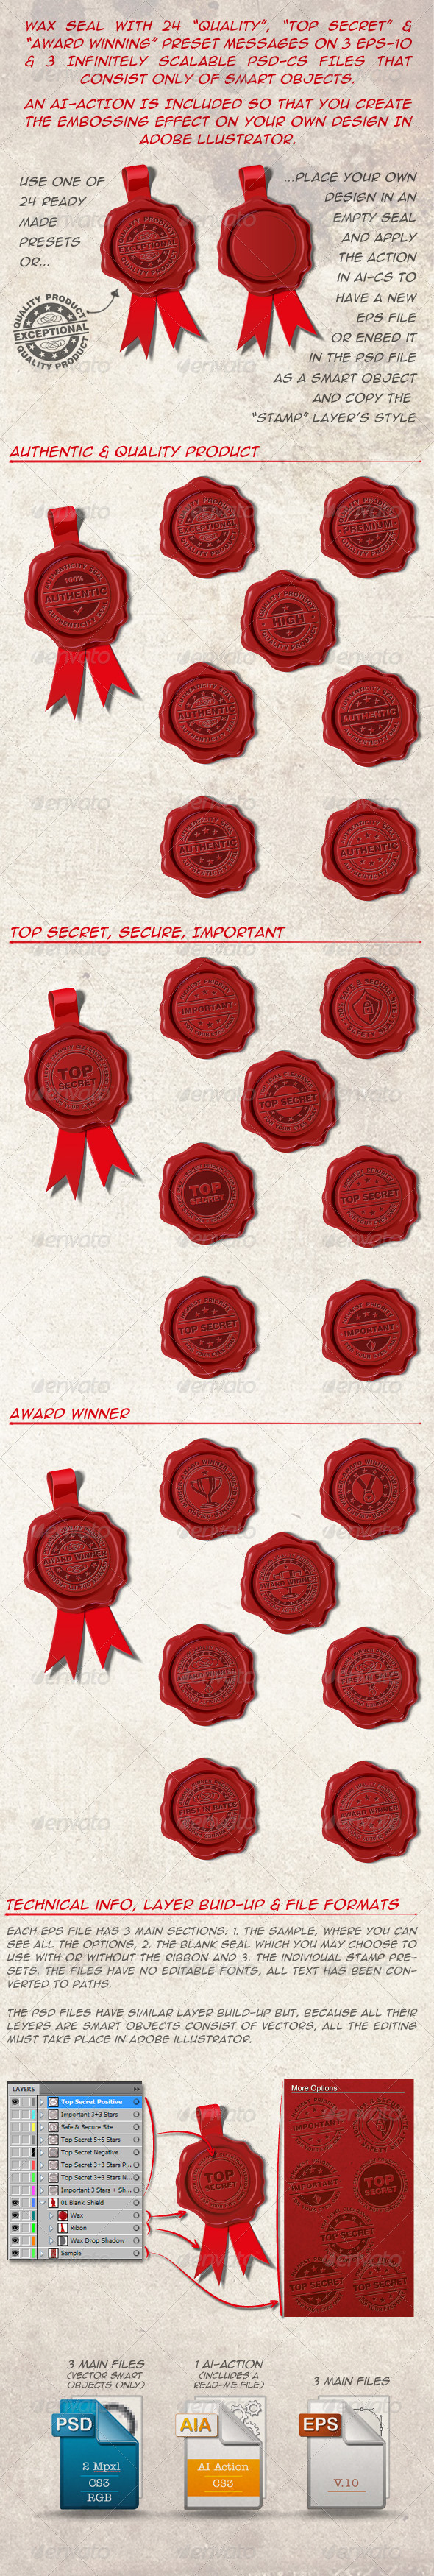 GraphicRiver 24 Wax Seals Top Secret Award Winner and Quality 4150822